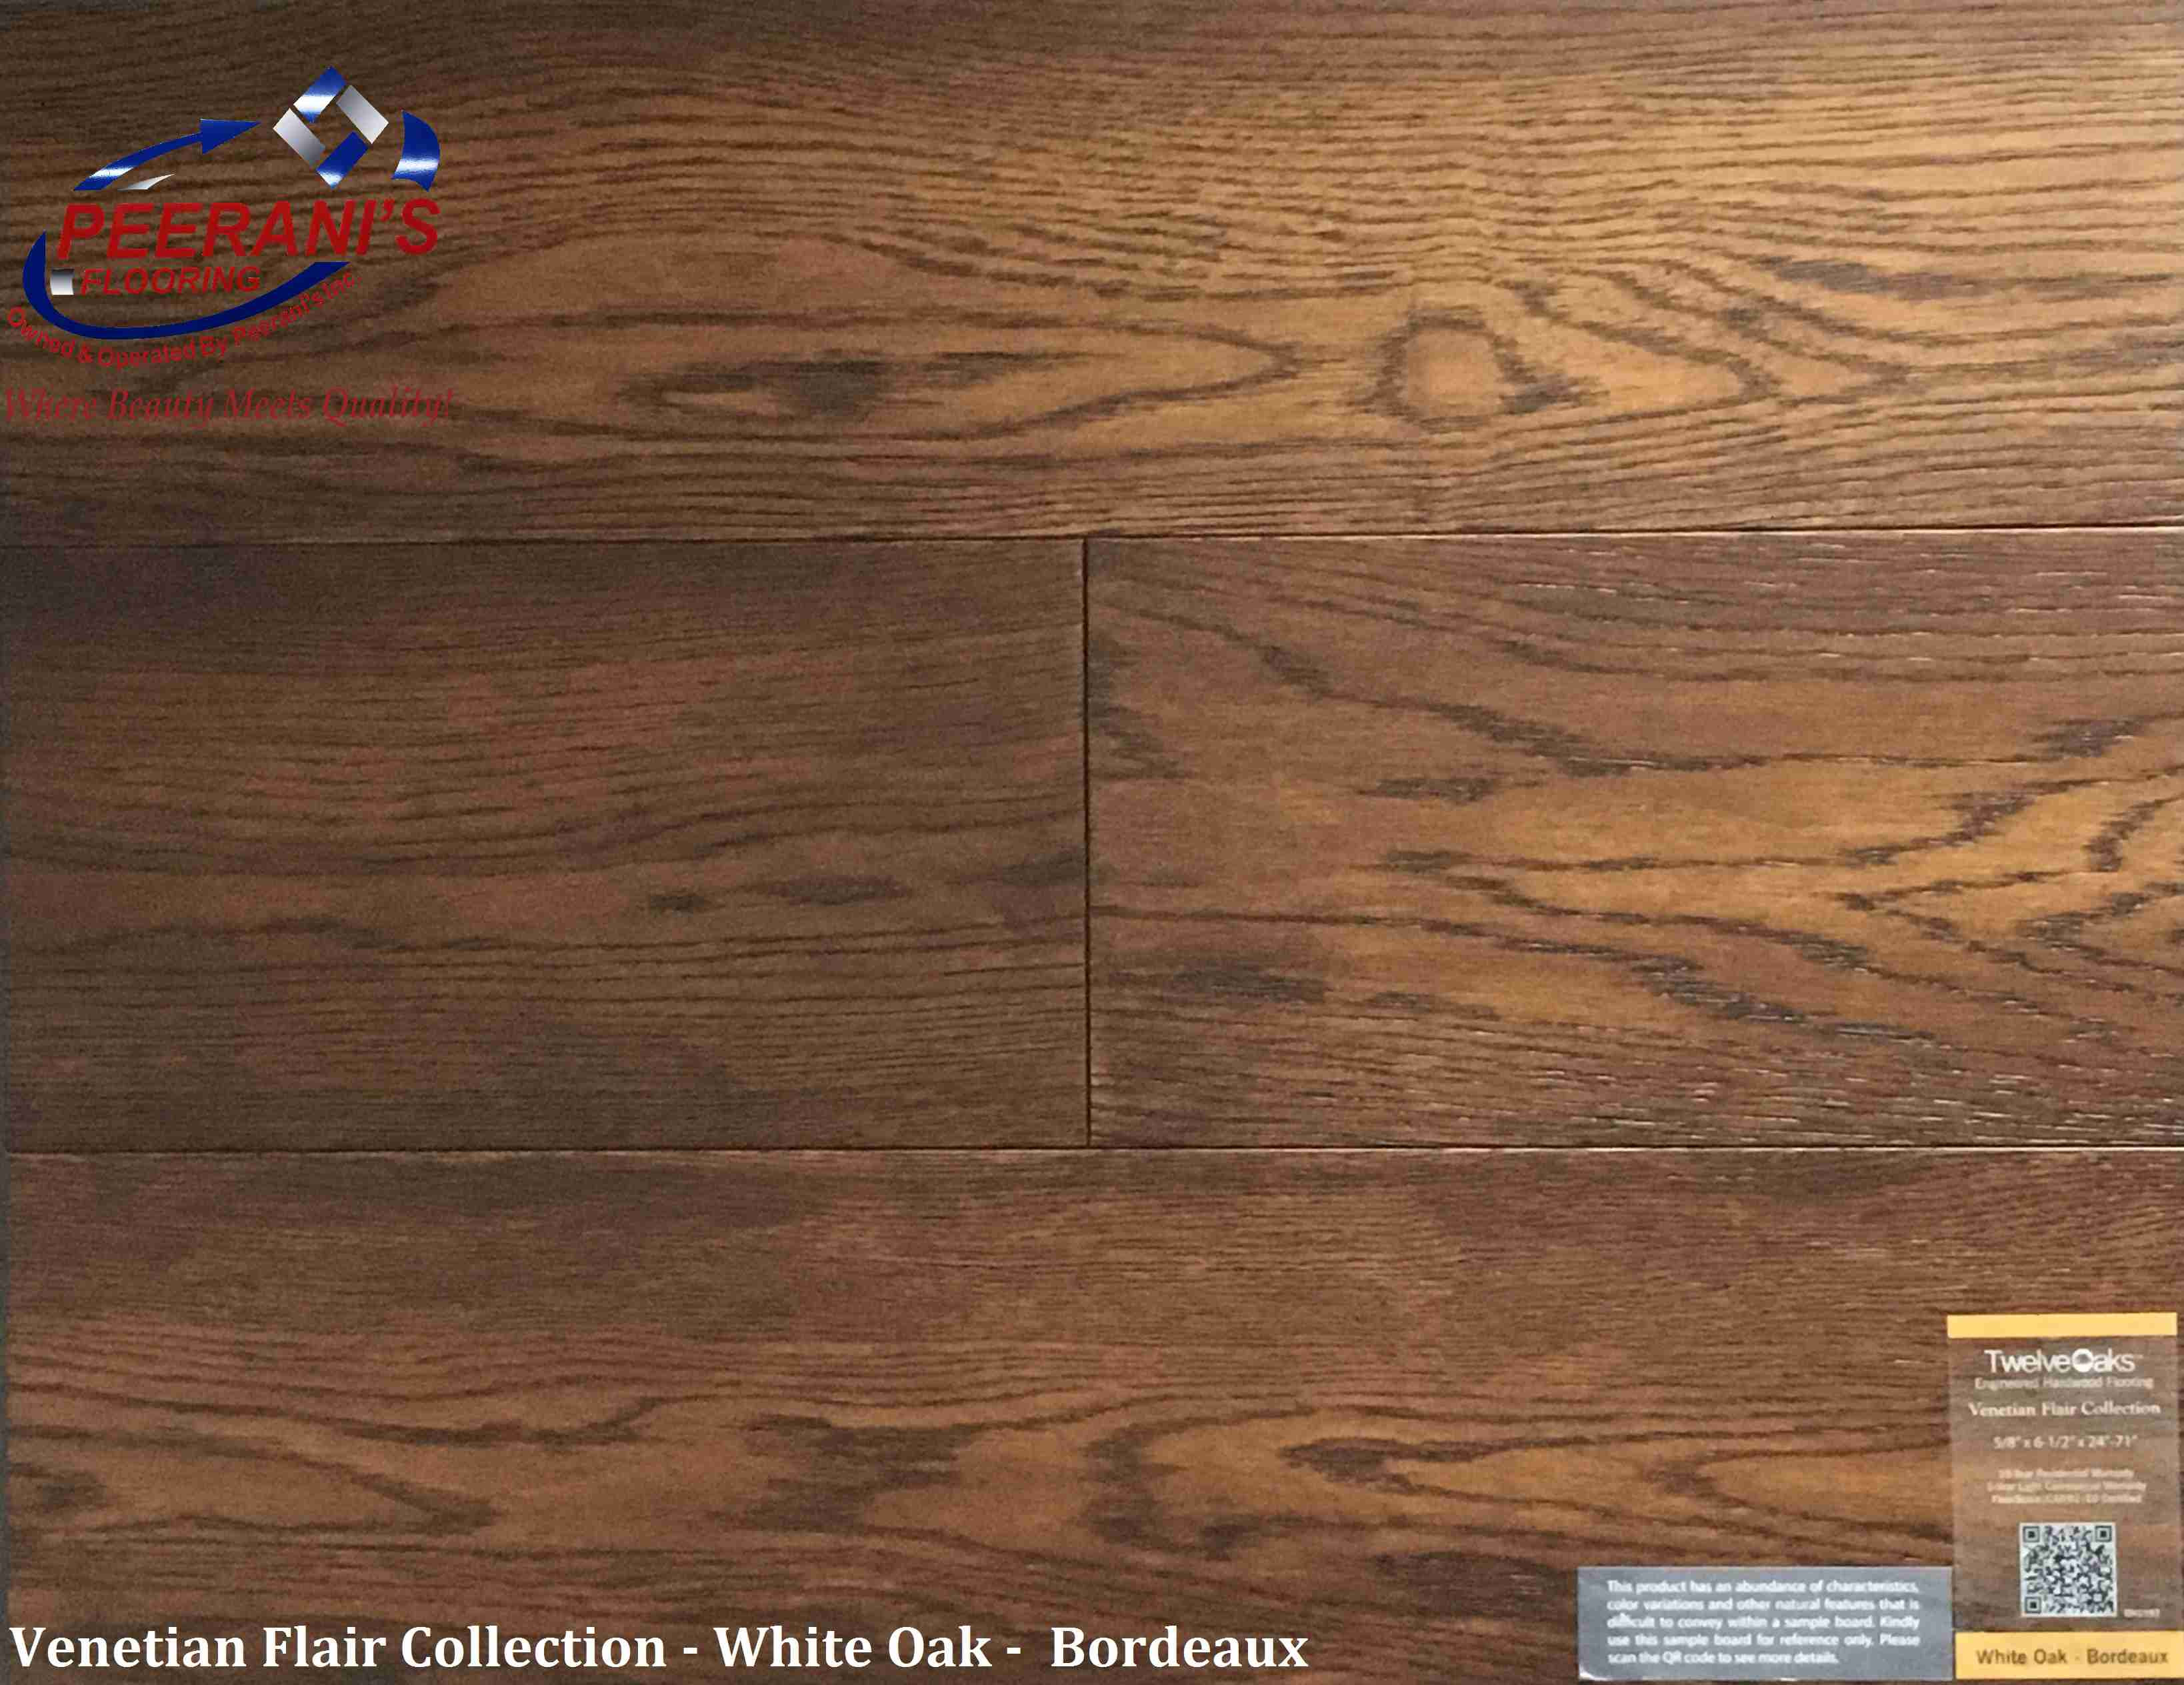 white oak engineered hardwood flooring of twelve oaks archives page 3 of 4 peeranis with regard to venetian flair white oak bordeaux